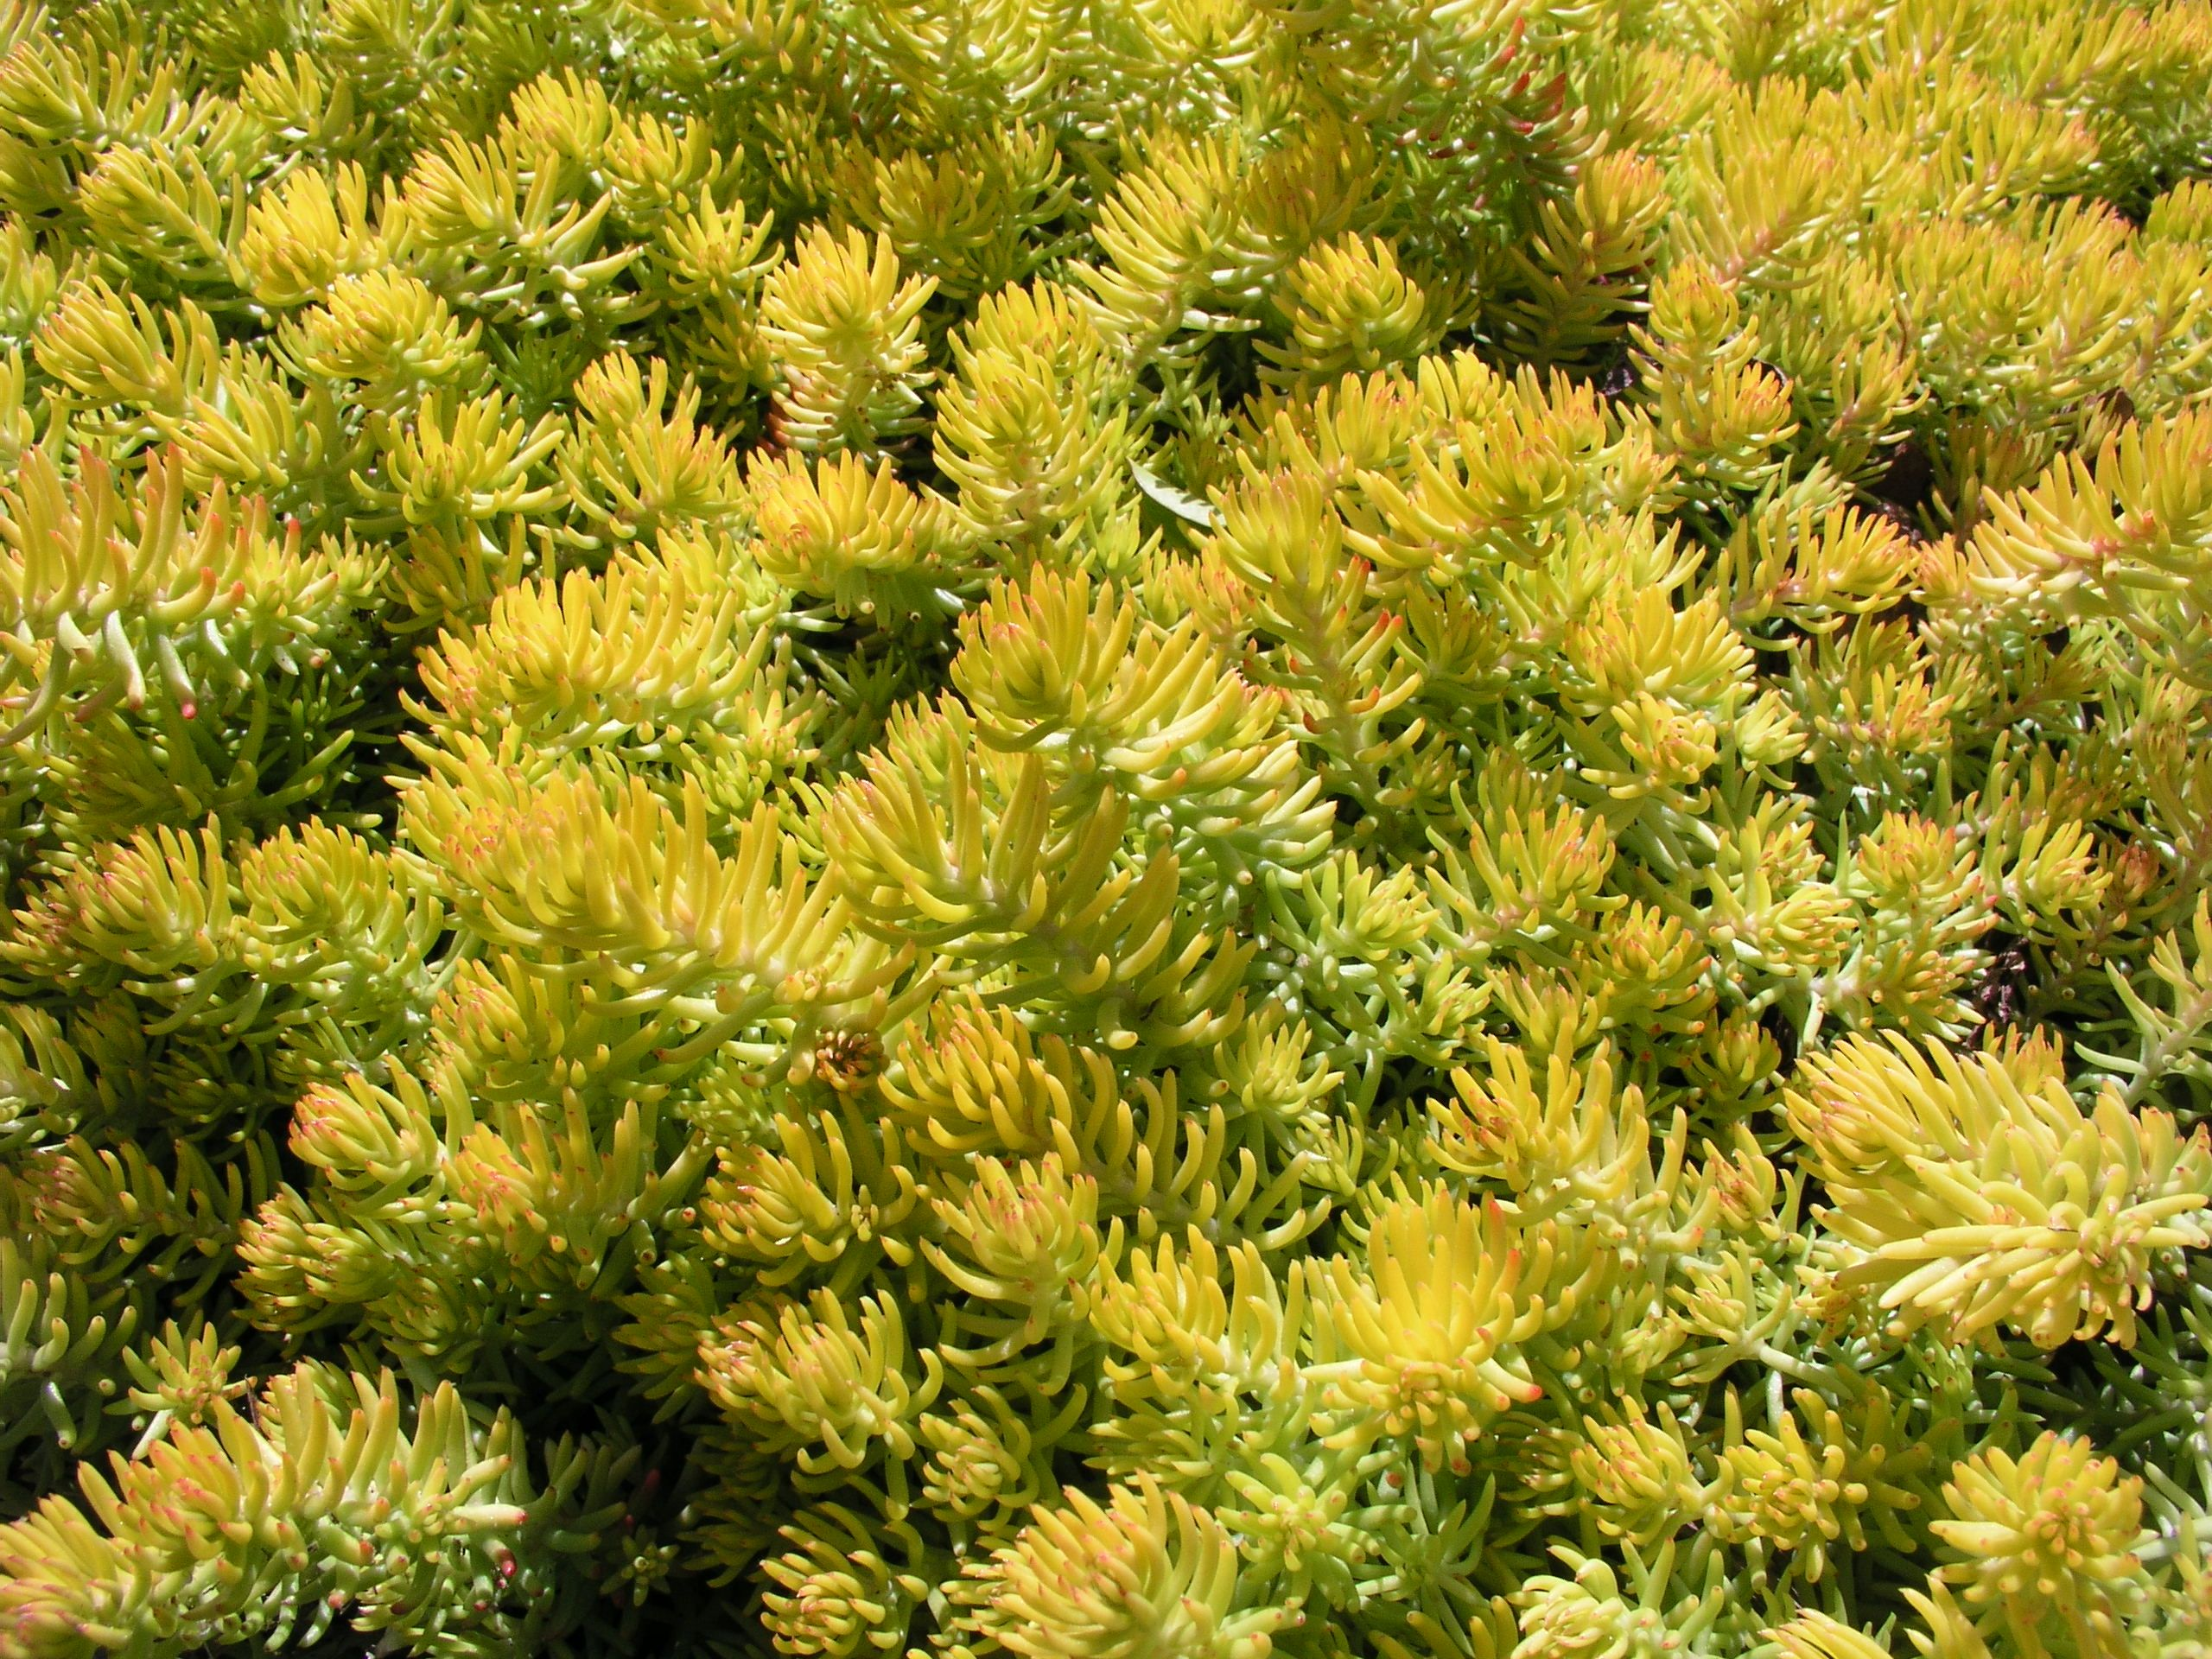 For Green Roof Sedum Reflexum This Is A Herbaceous Perennial That